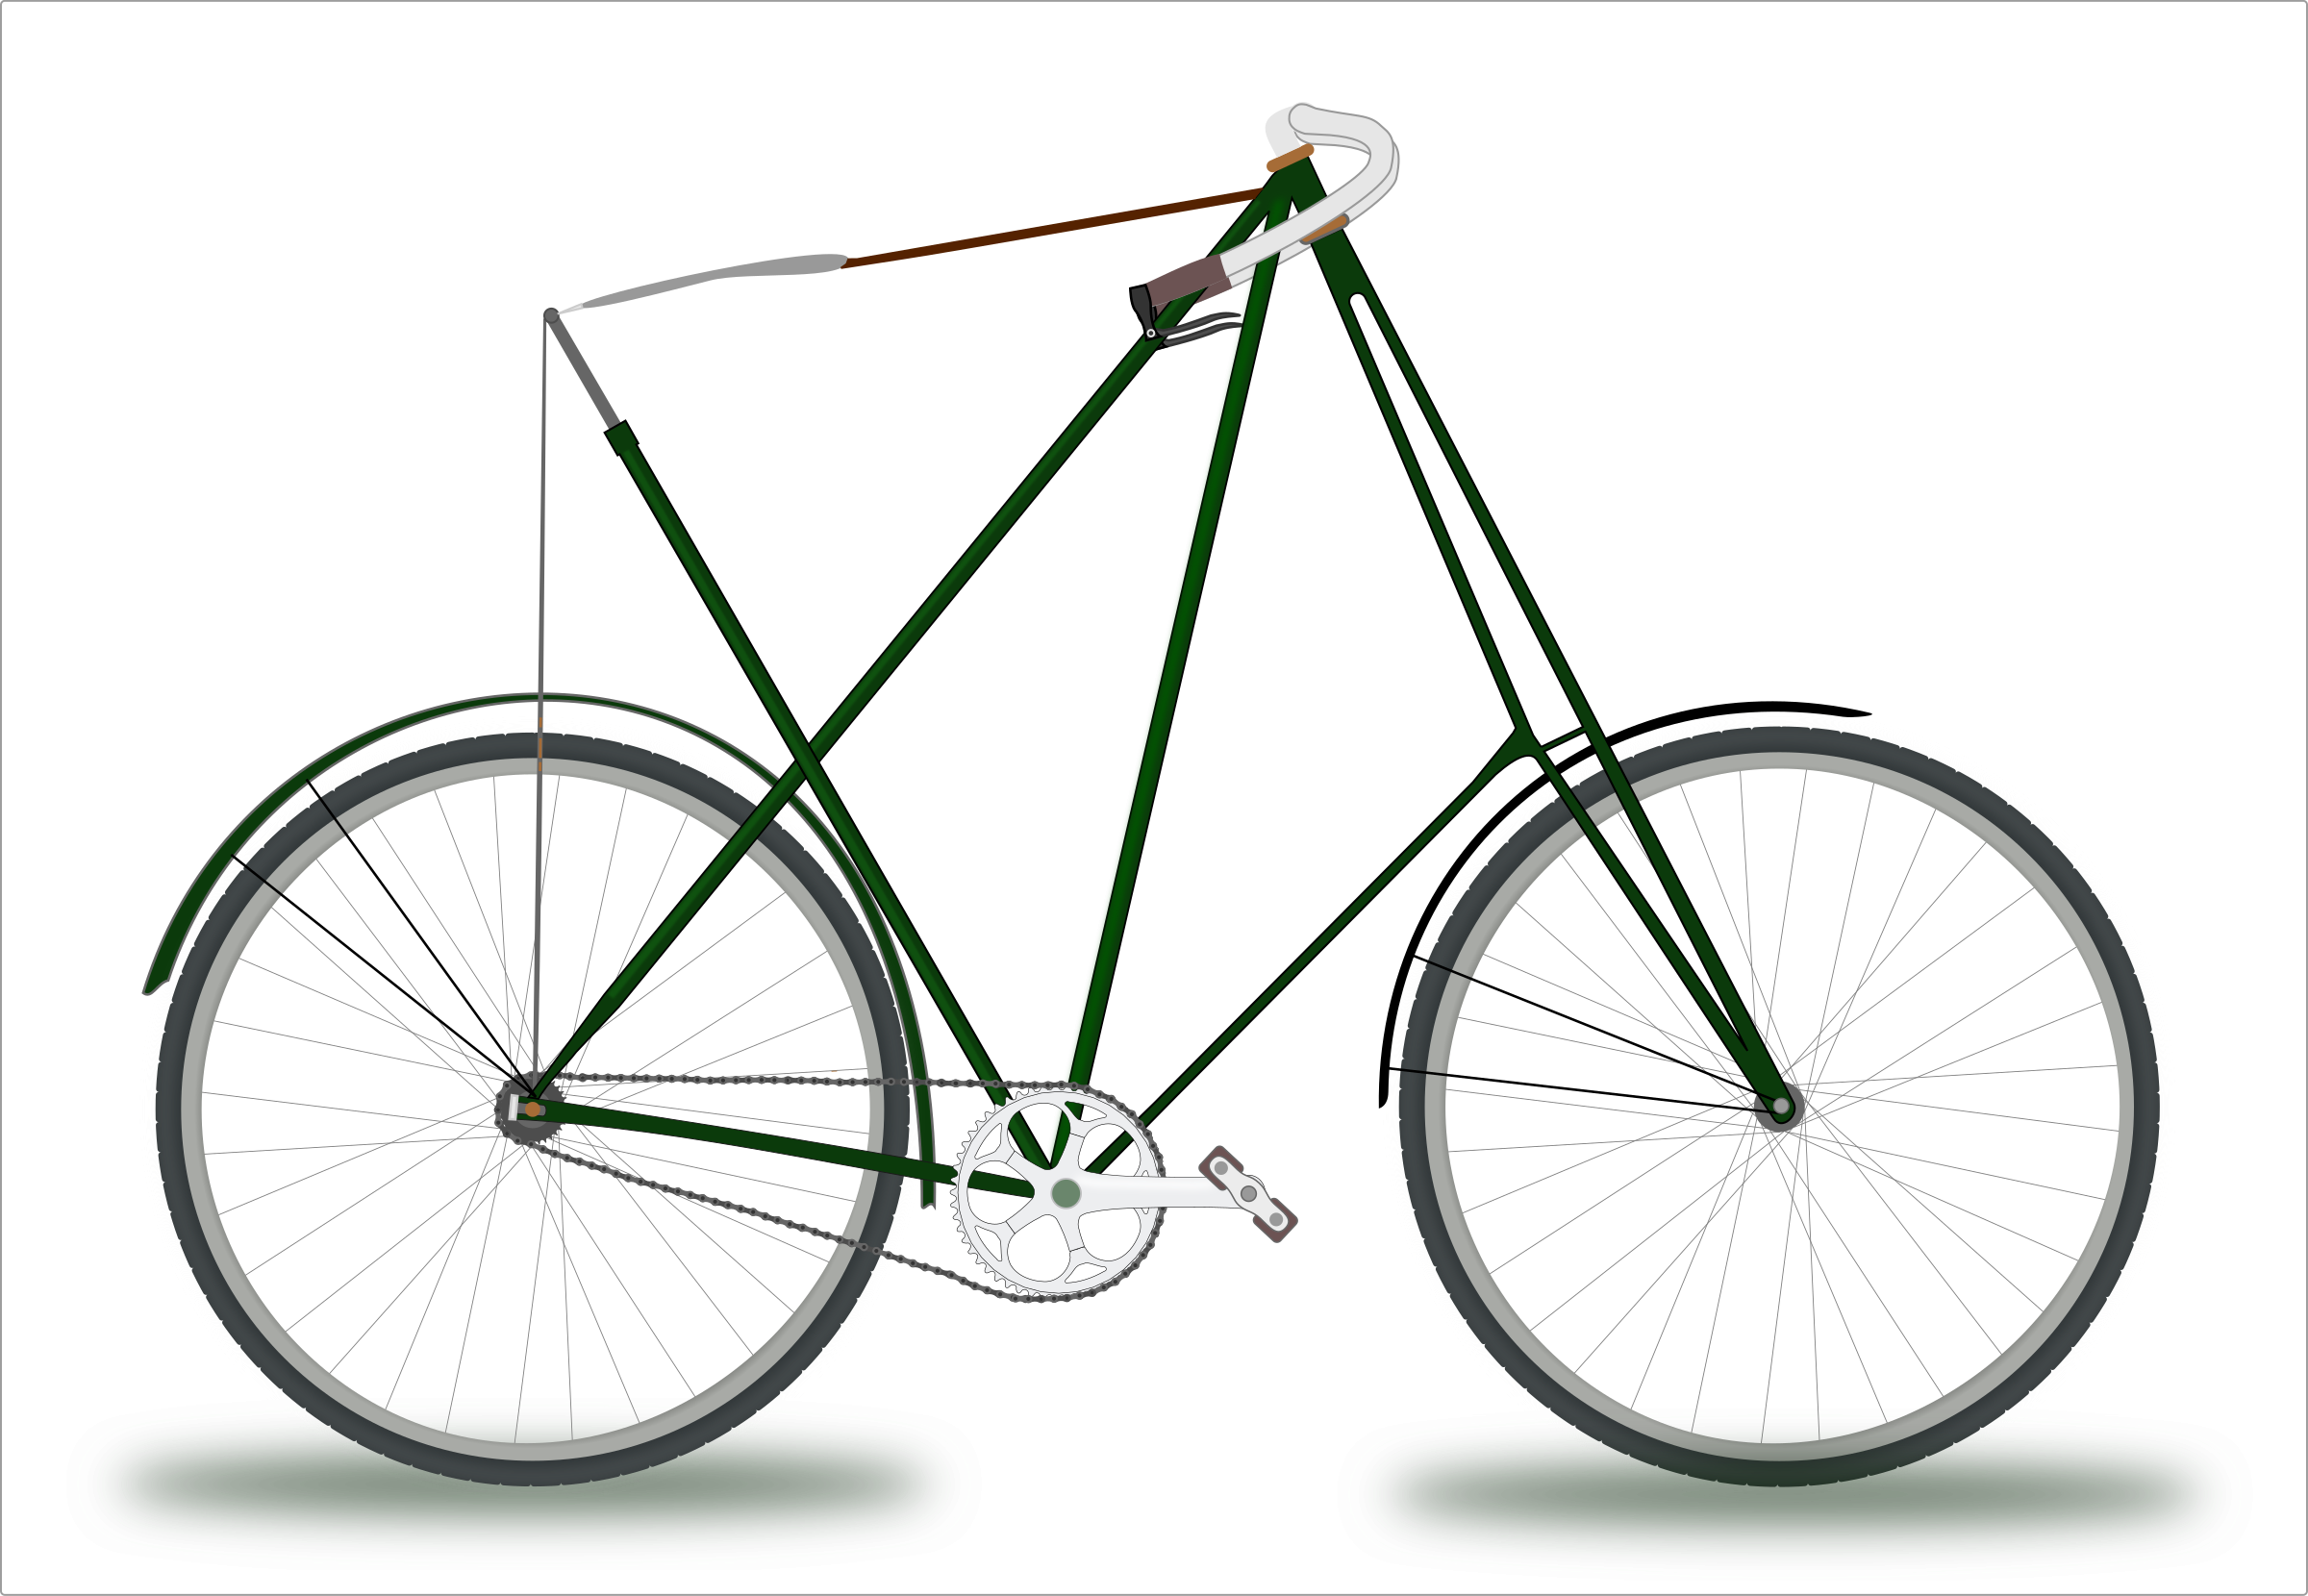 Pedersen Bike by luc